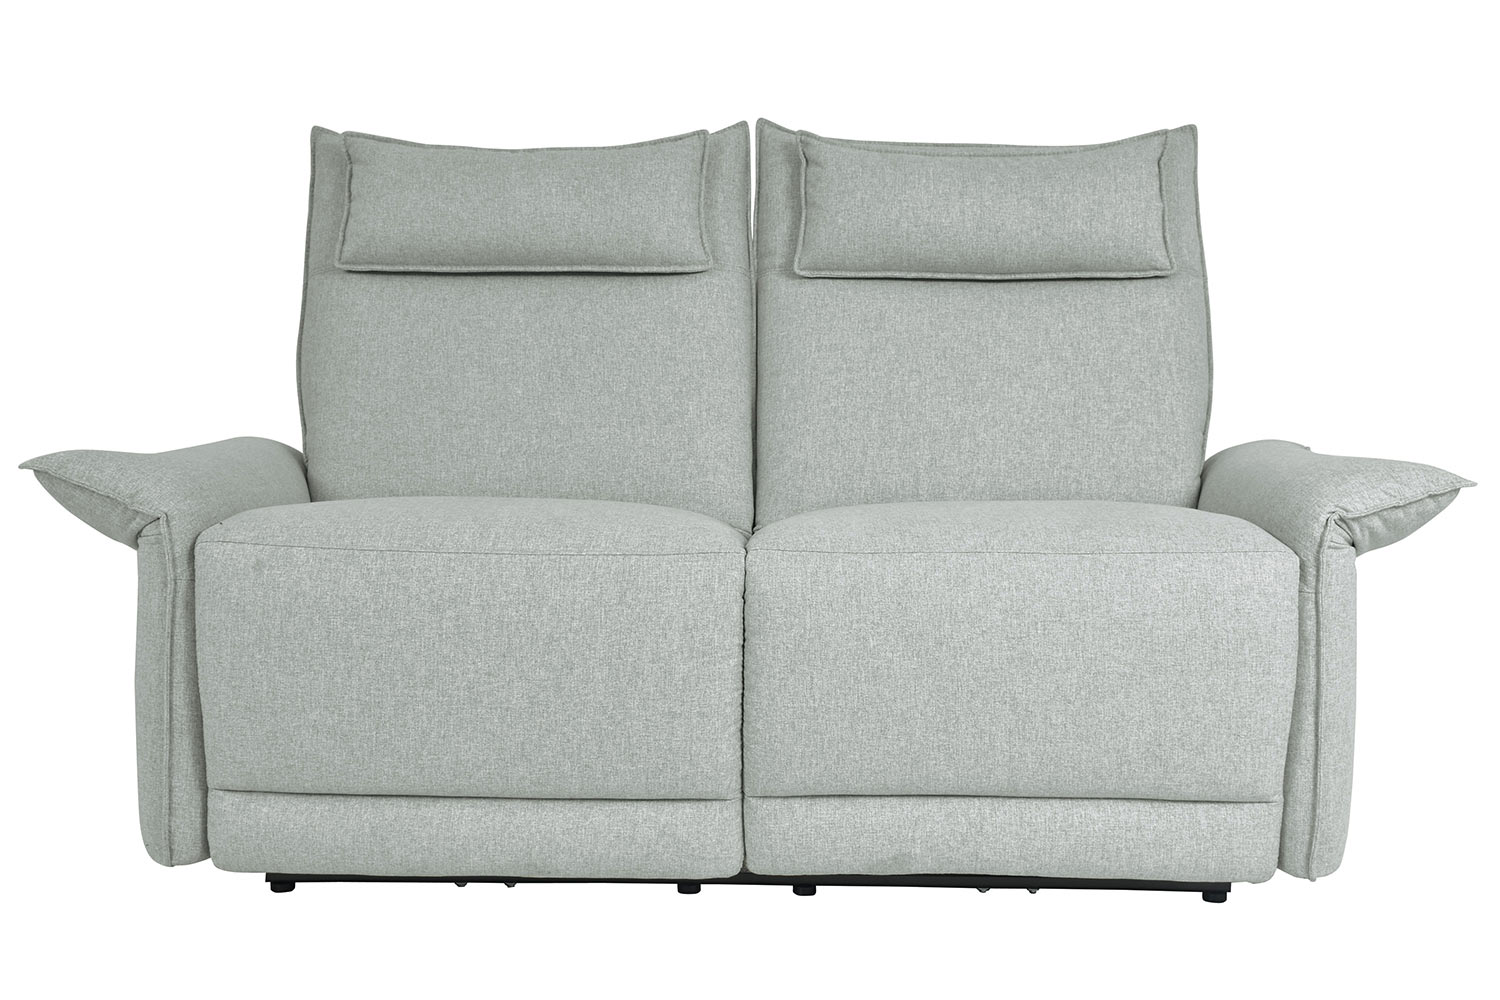 Homelegance Linette Power Double Reclining Love Seat with Power Headrests - Ocean